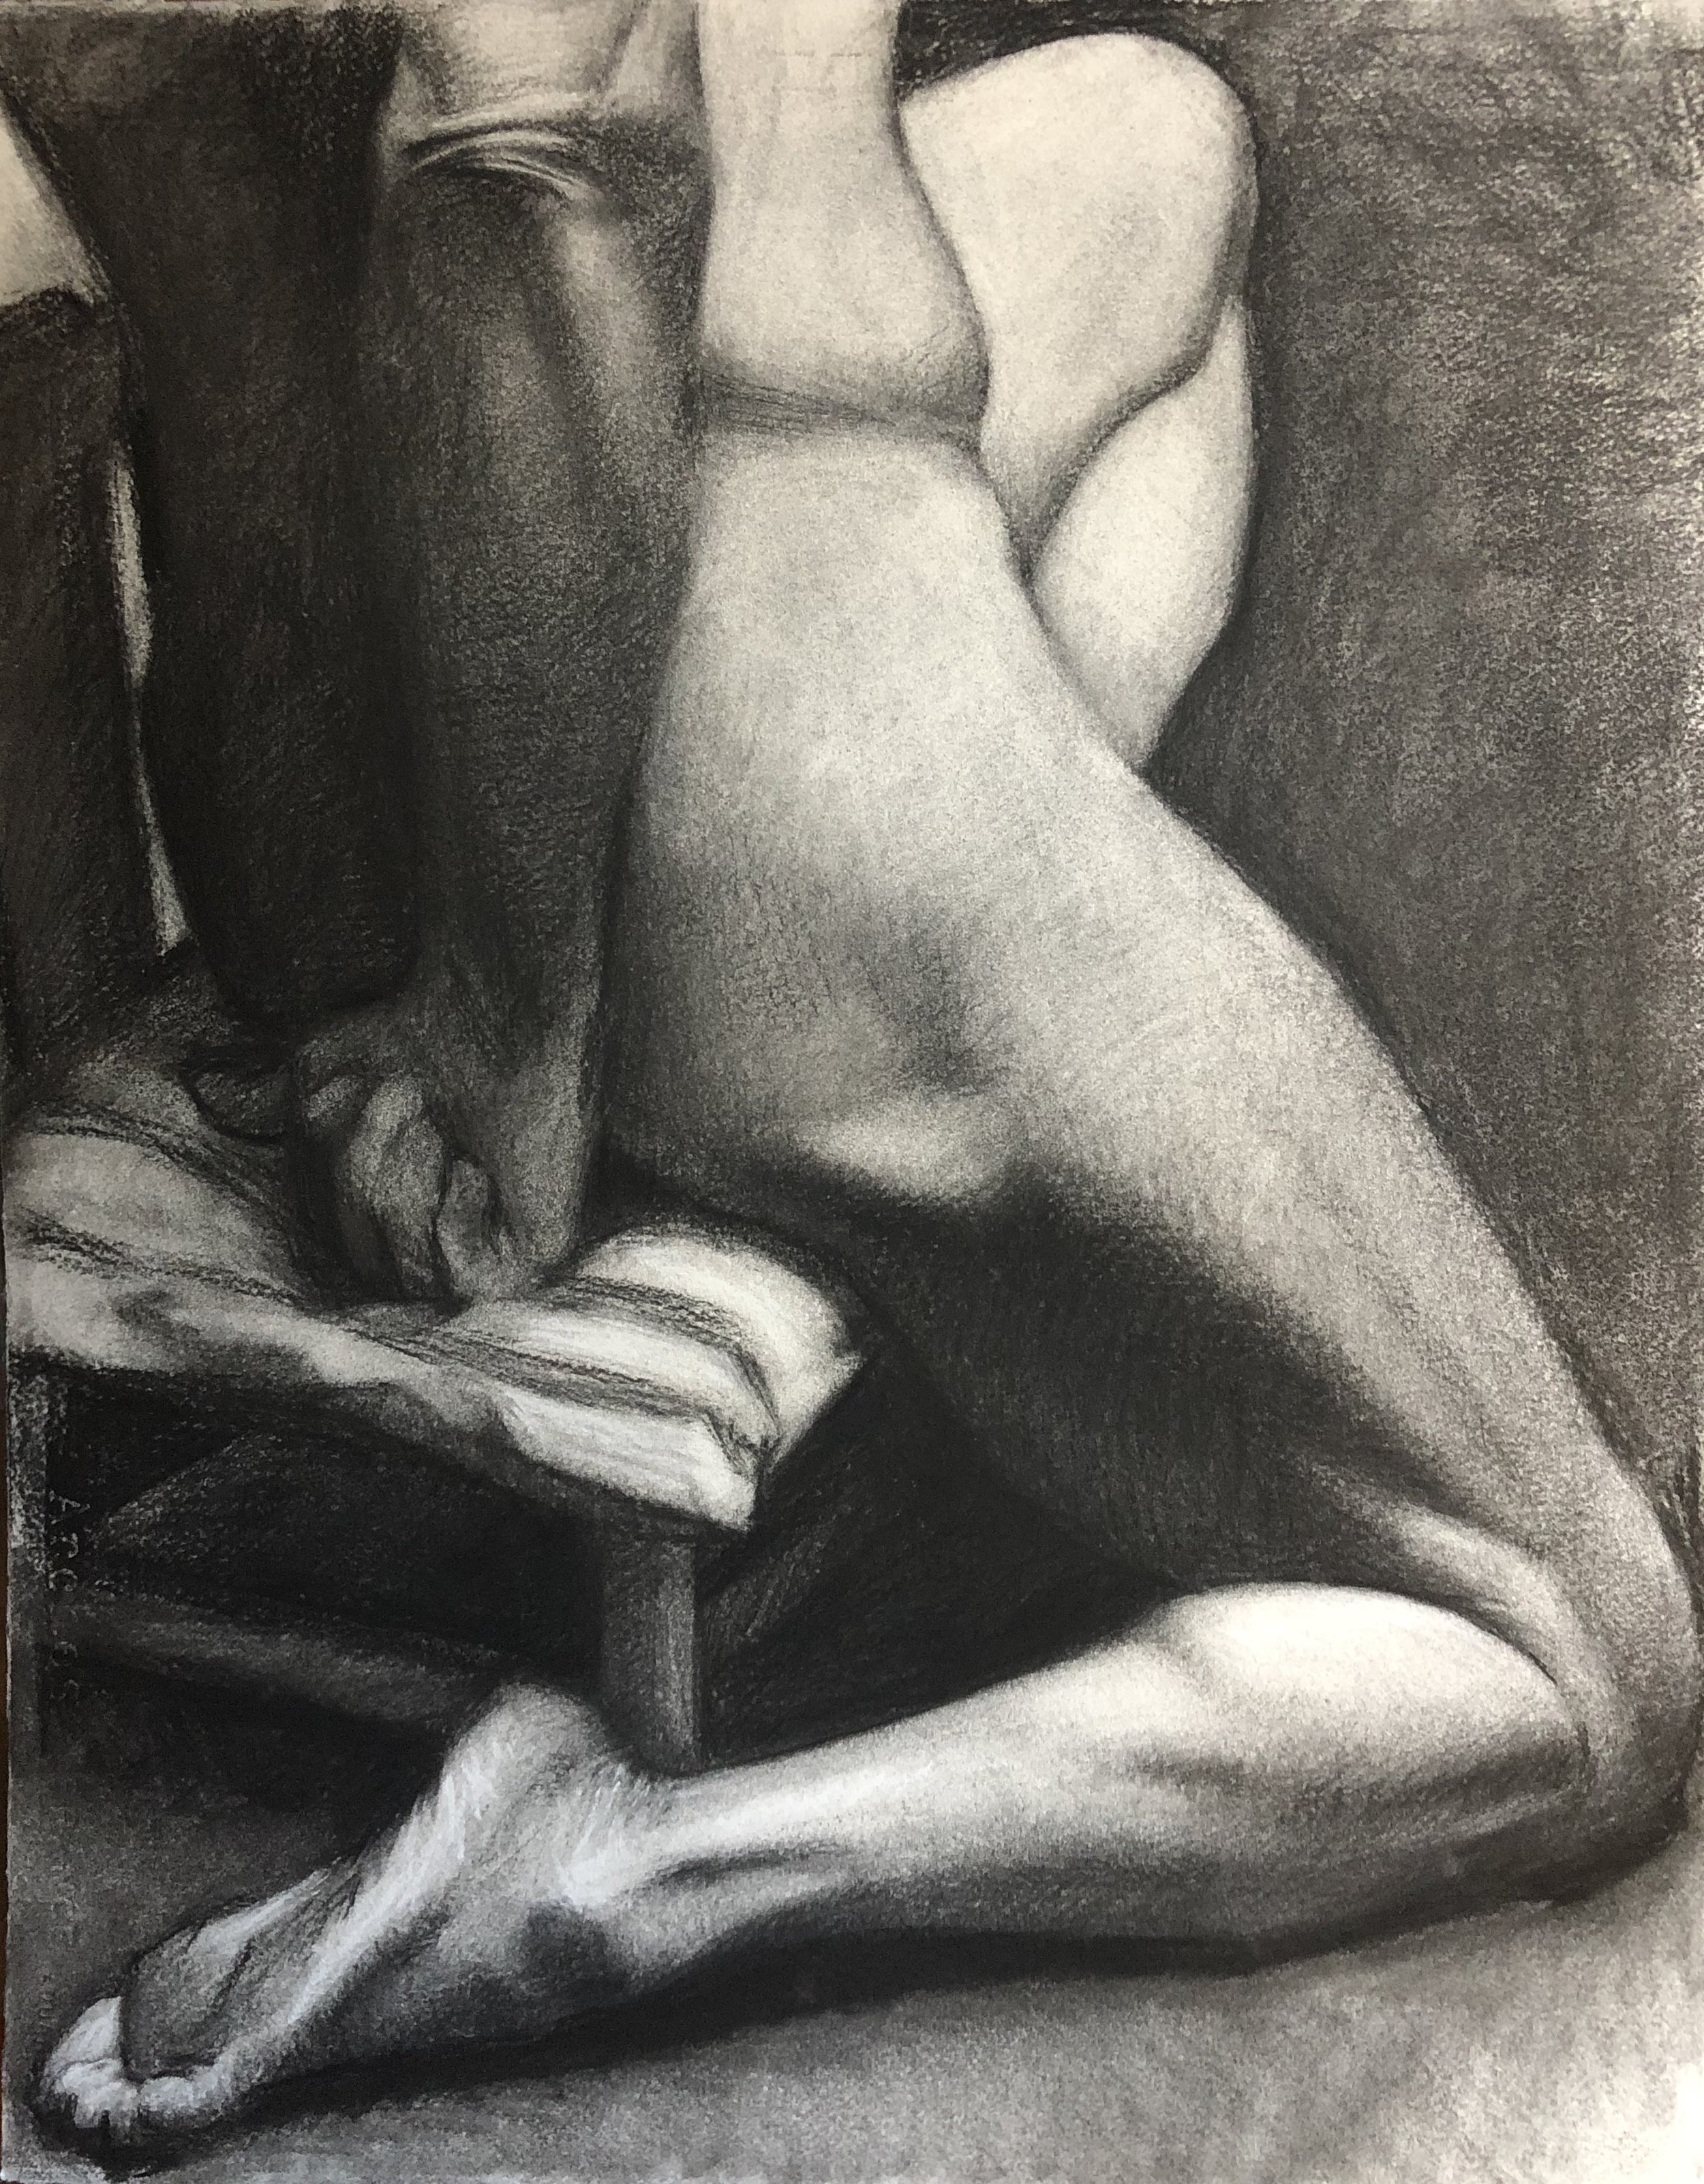 charcoal drawing created in a studio art class